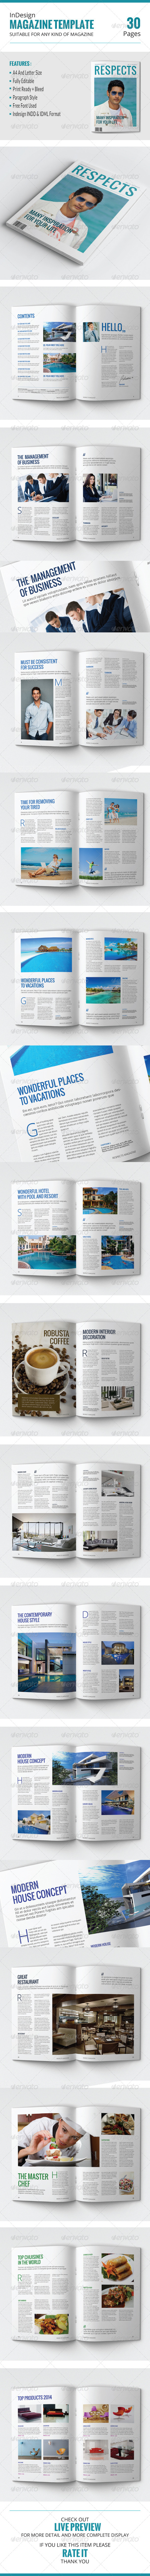 GraphicRiver InDesign Magazine Template 7804976